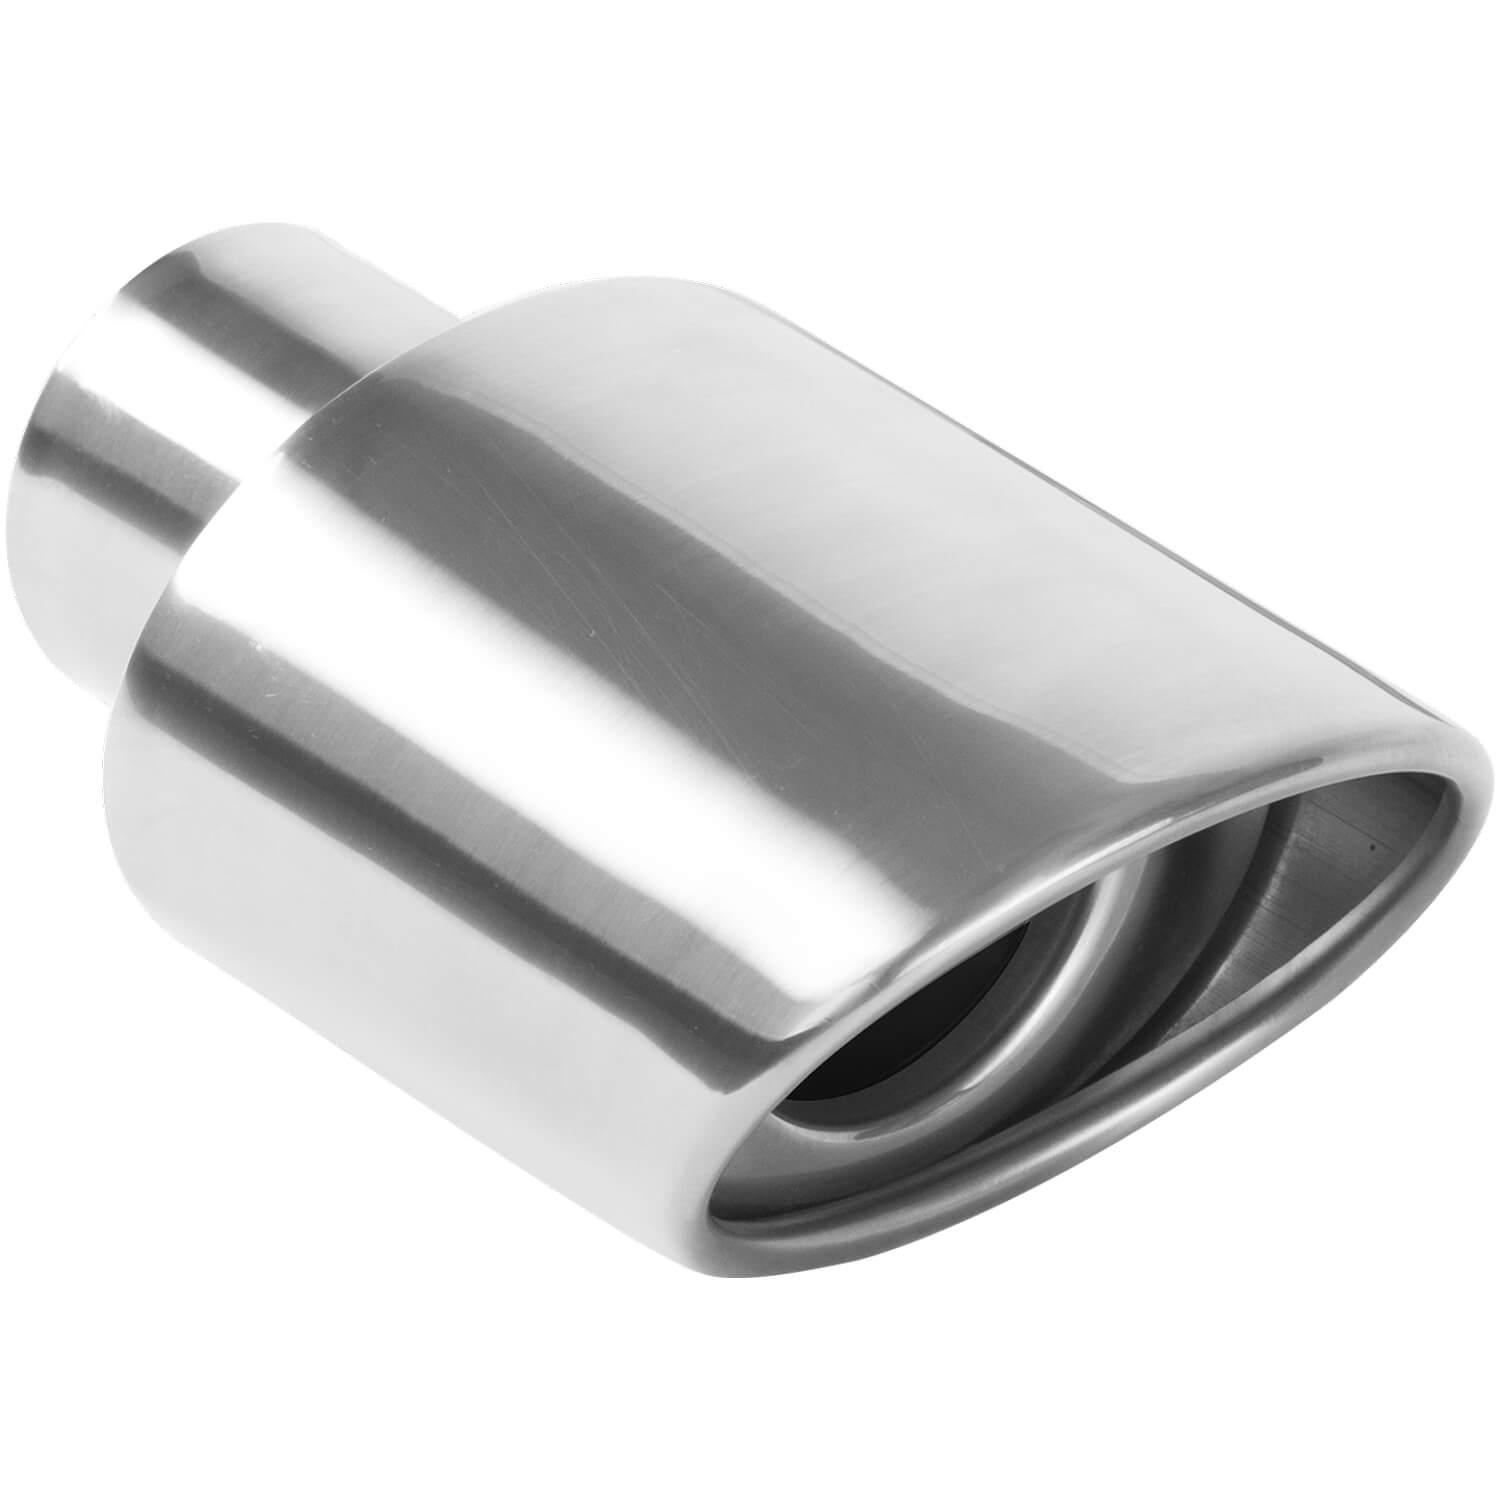 Magnaflow 35158 - Magnaflow Polished Stainless Steel Weld-On Single Exhaust Tips